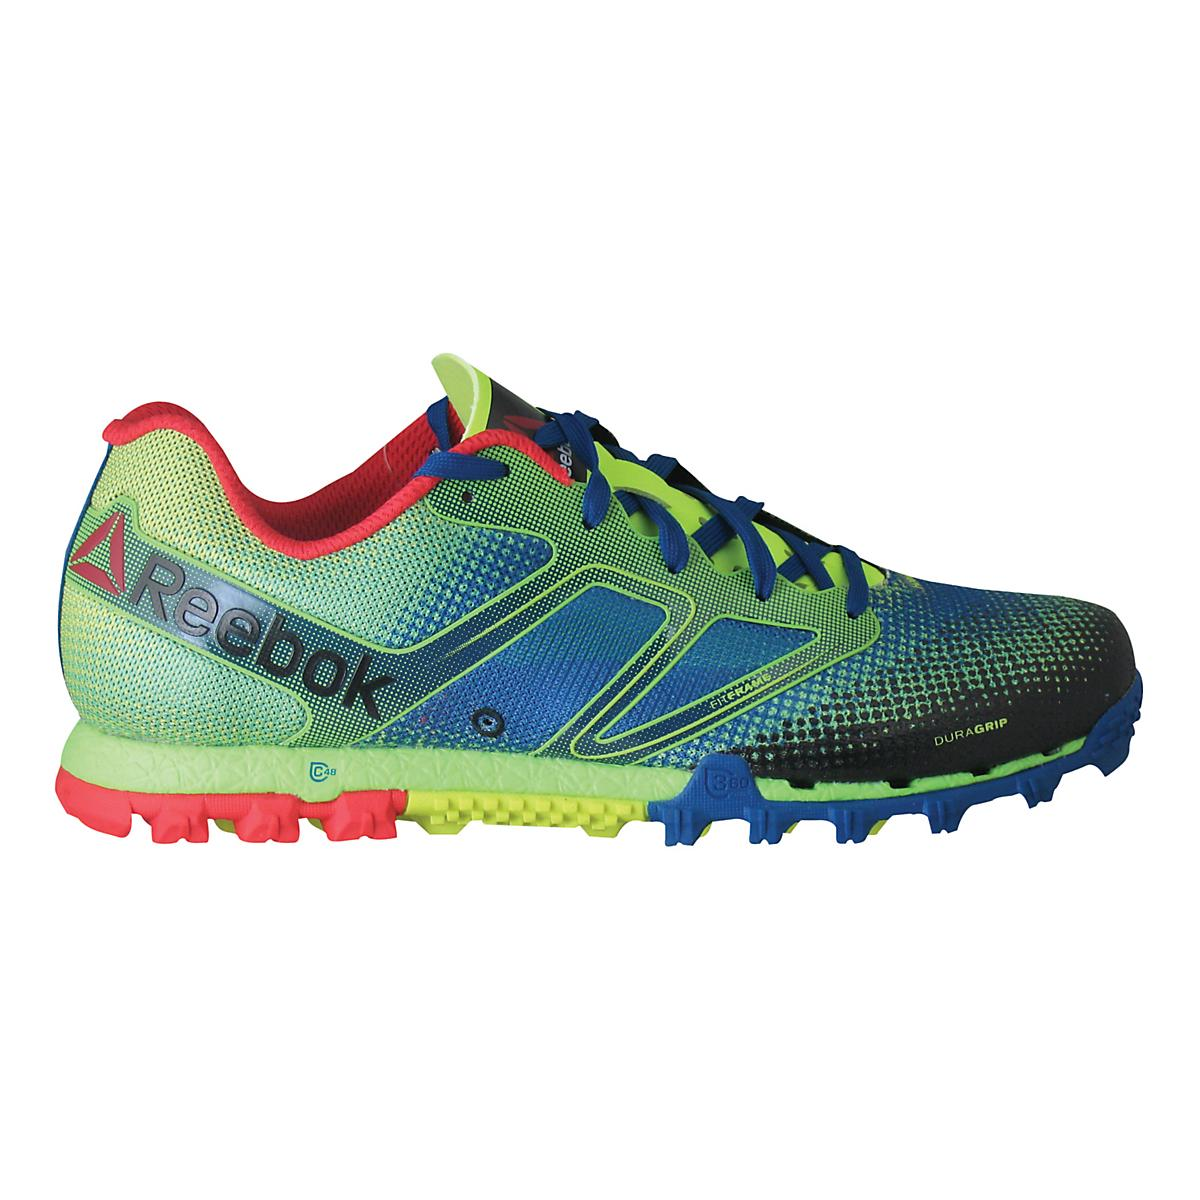 e83b3b1b8 Mens Reebok All Terrain Super Running Shoe at Road Runner Sports